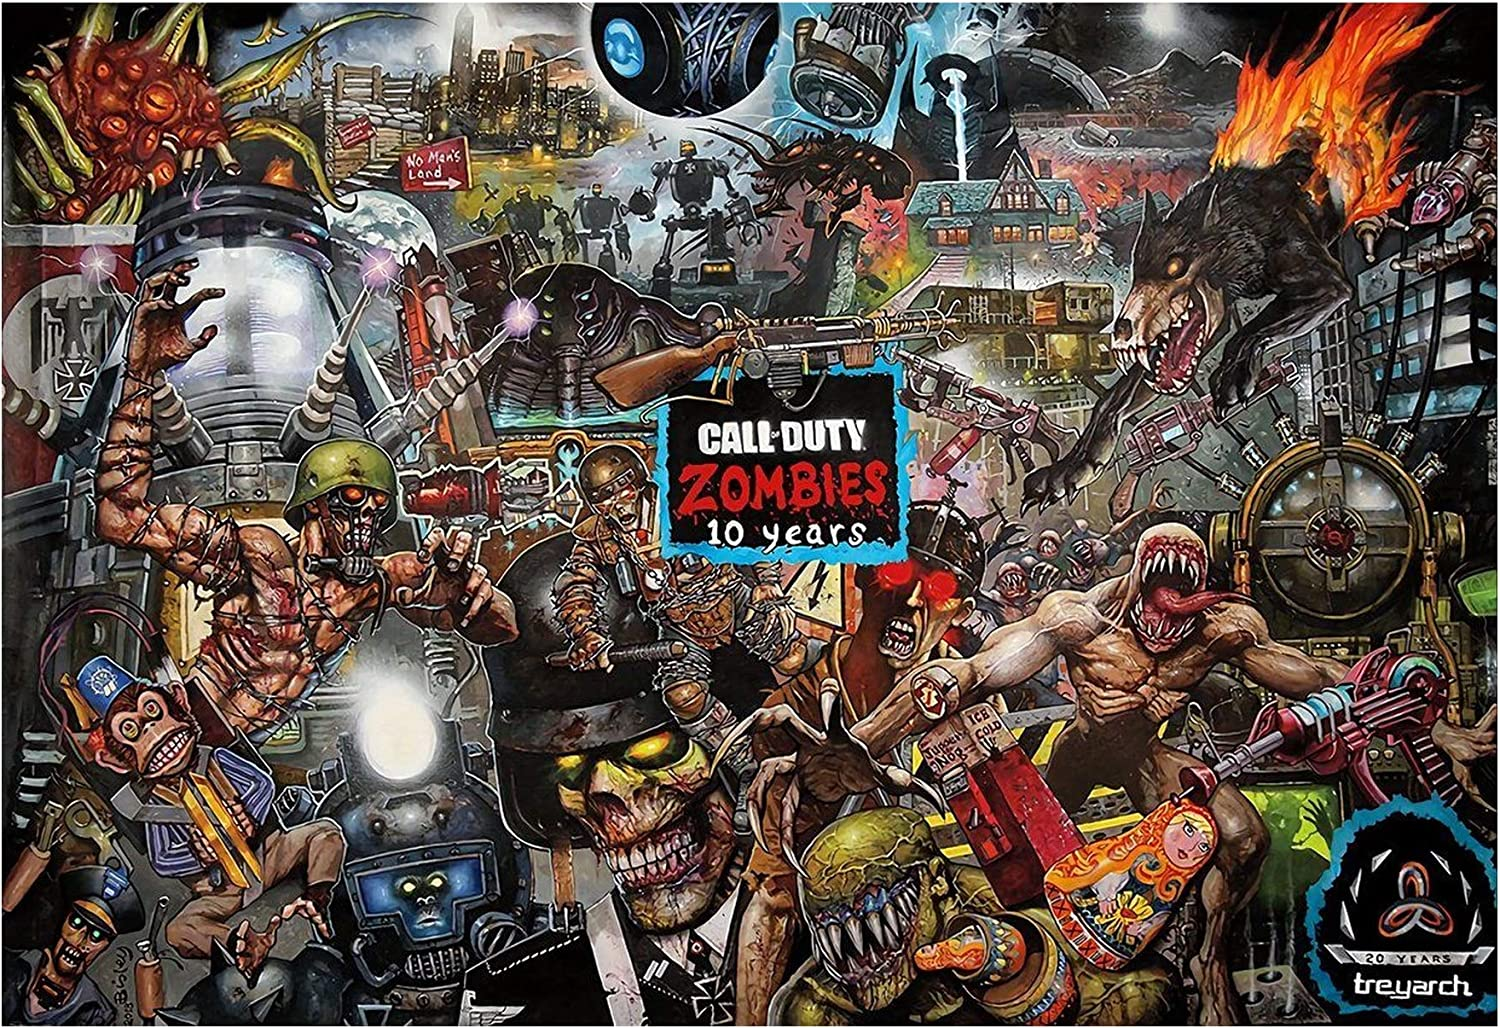 Amazon Com Call Of Duty Black Ops 4 Zombies 10 Years Game Print 11x17 13x20 18x24 11 X17 27x43cm Posters Prints